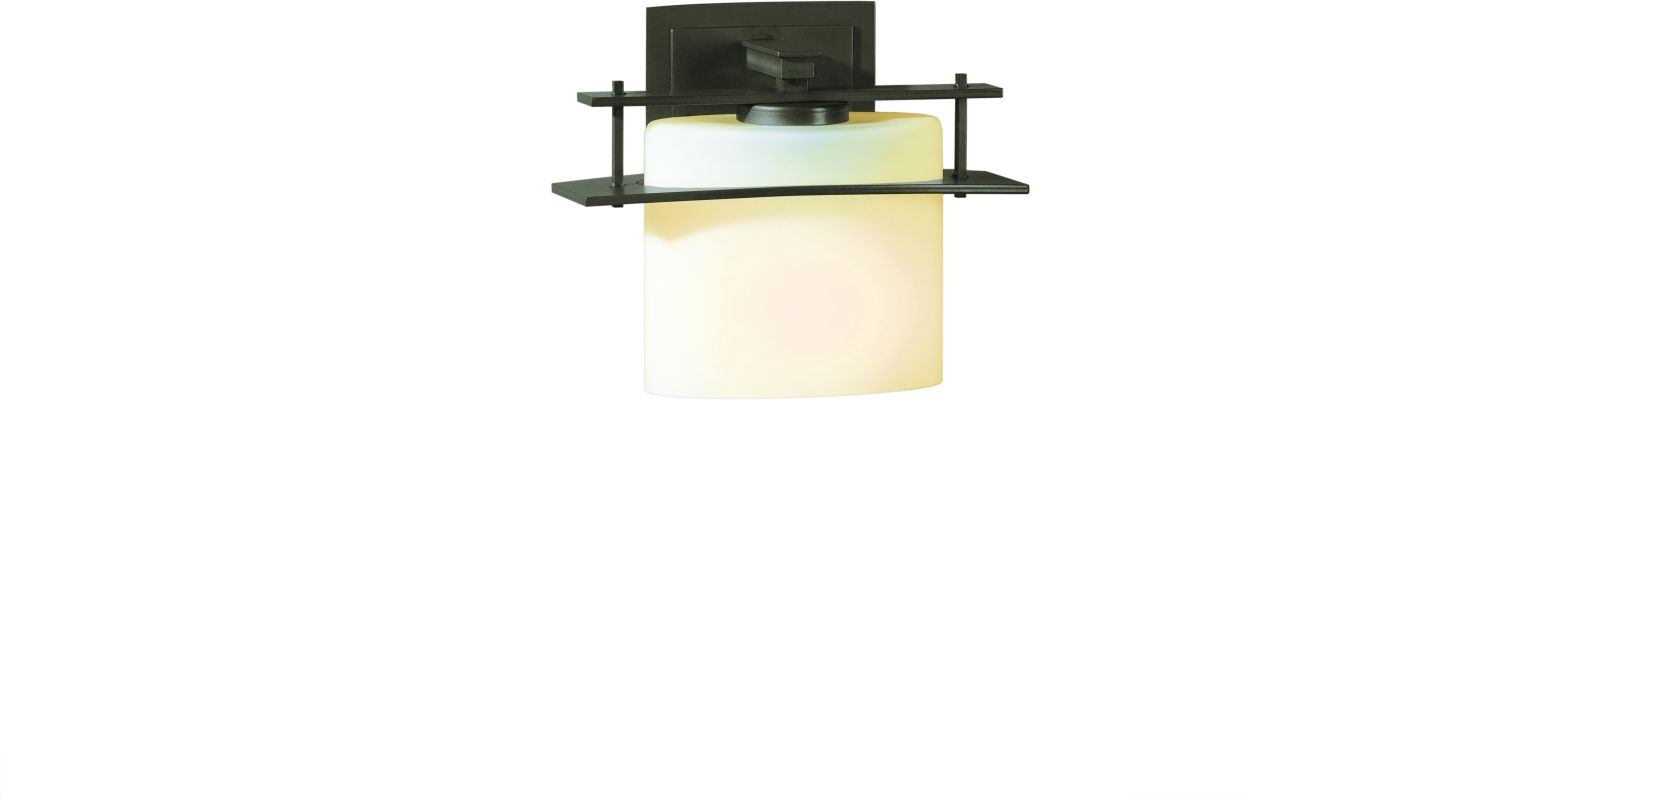 Hubbardton Forge 207521 Single Light Down Lighting ADA Wall Sconce Sale $457.60 ITEM#: 1163977 MODEL# :207521-07 :